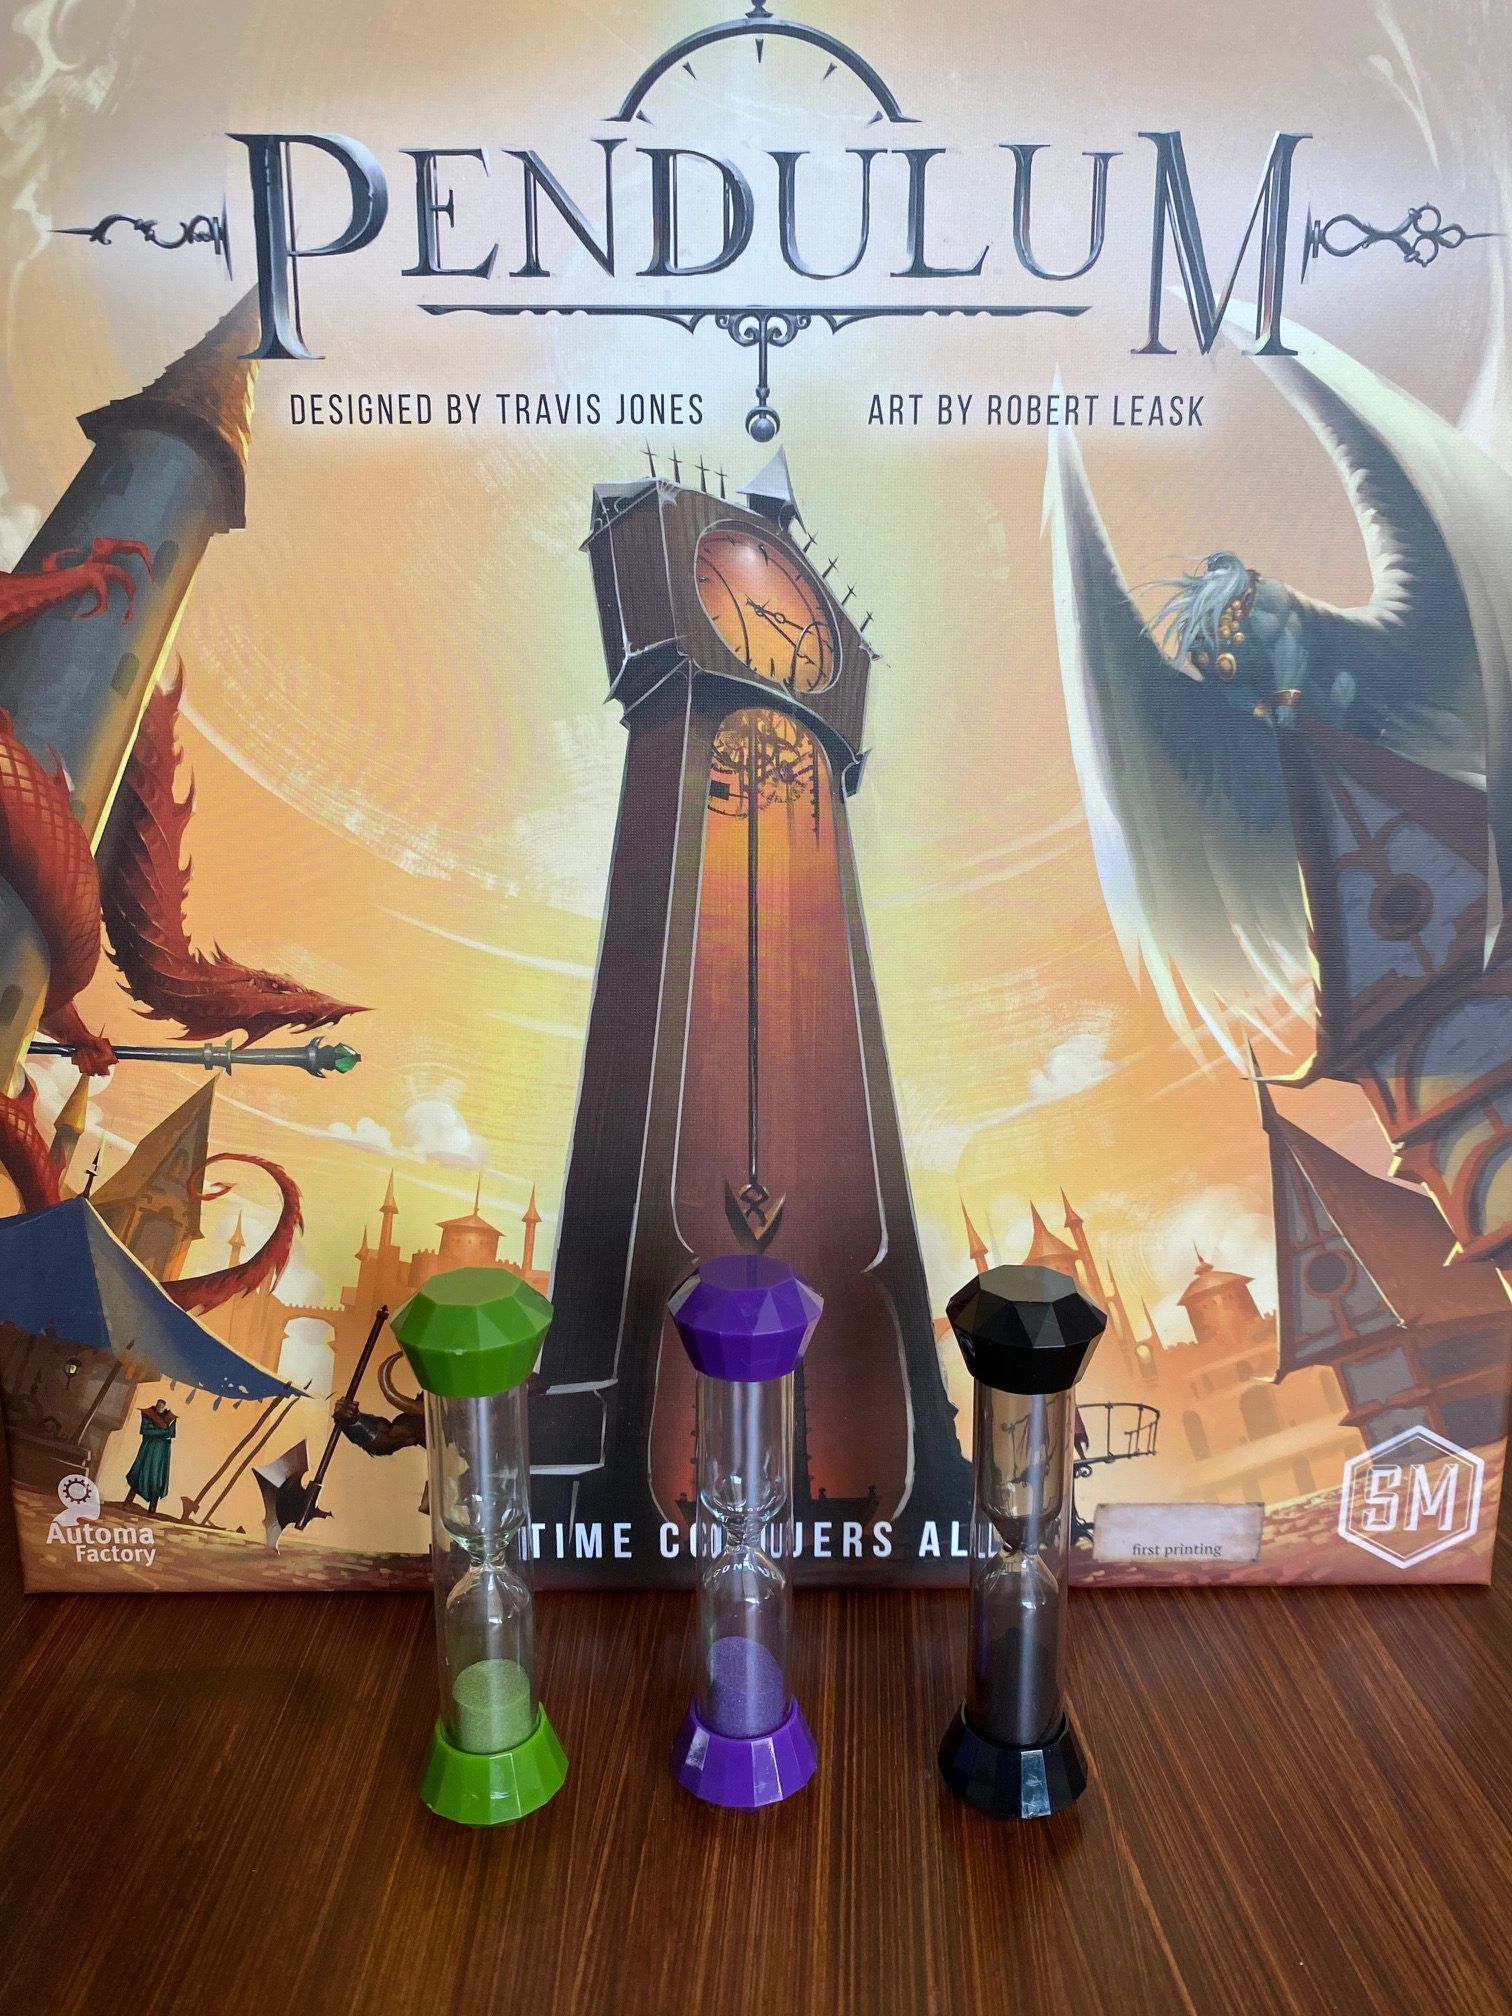 An image of the Pendulum Game Box by Stonemaier, which has a large clock tower in the center, and inf front of the box are three sand timers in green, purple, and black